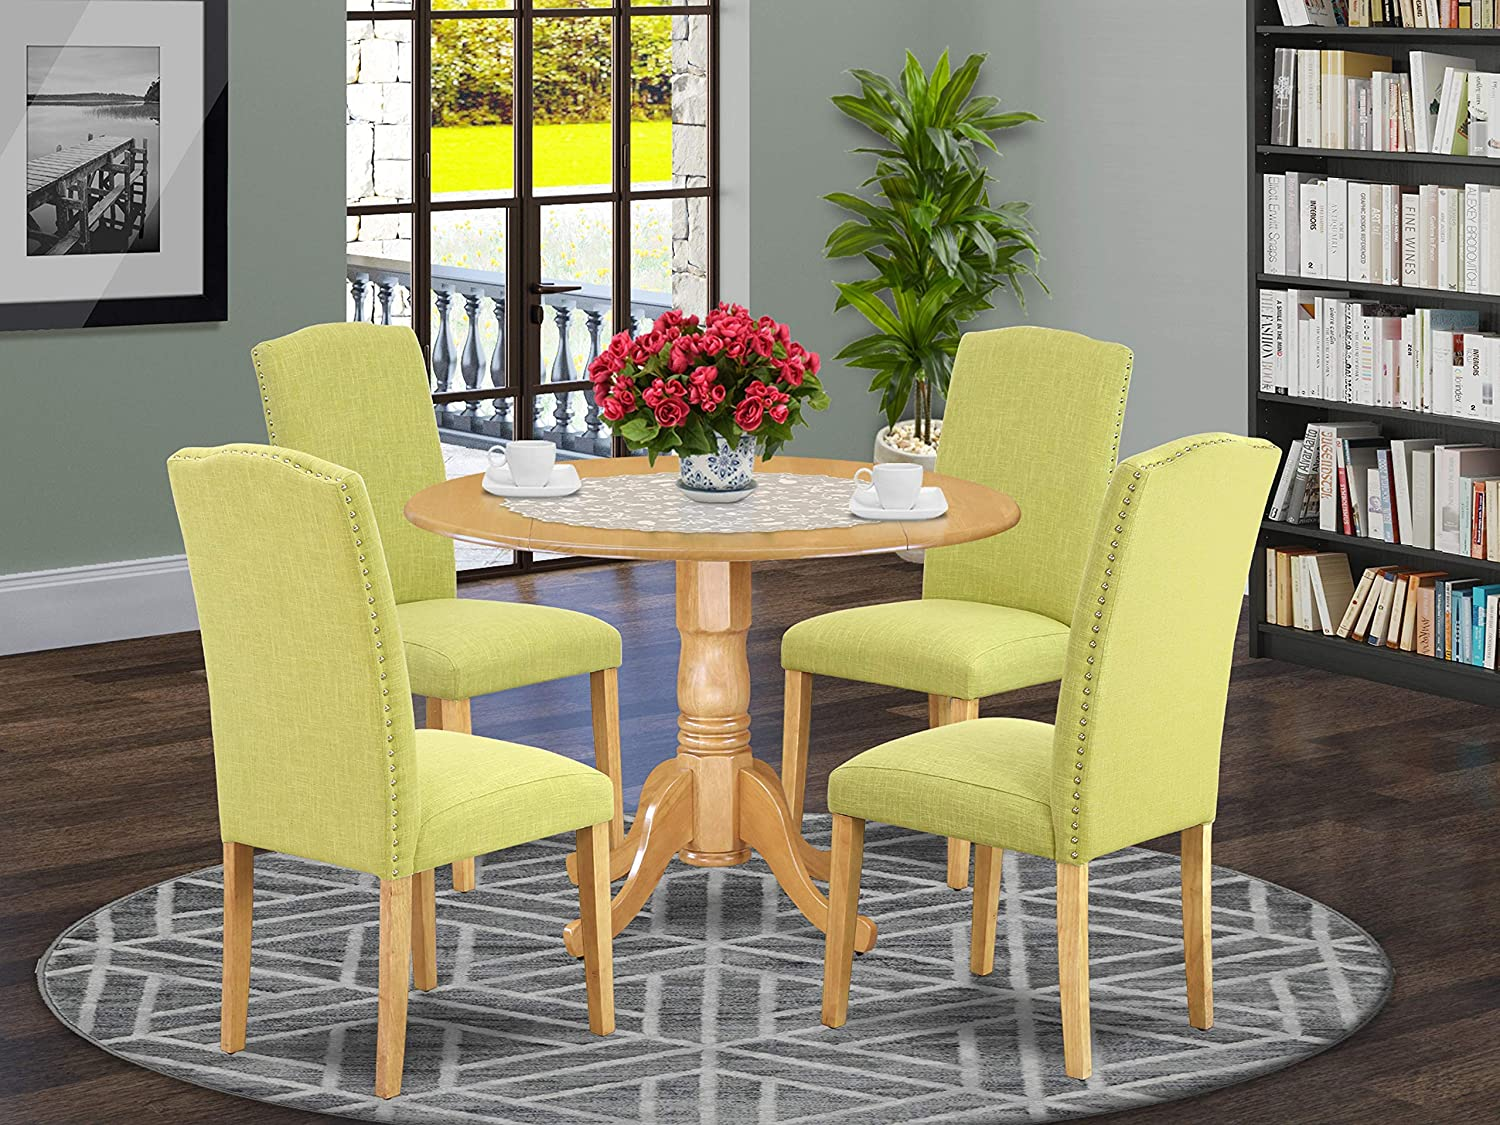 Table Chair Sets Home Kitchen Dlen3 Blk 20 3pc Round 42 Inch Dining Table With Two 9 Inch Drop Leaves And Two Parson Chair With Black Leg And Linen Fabric Dark Gotham Grey